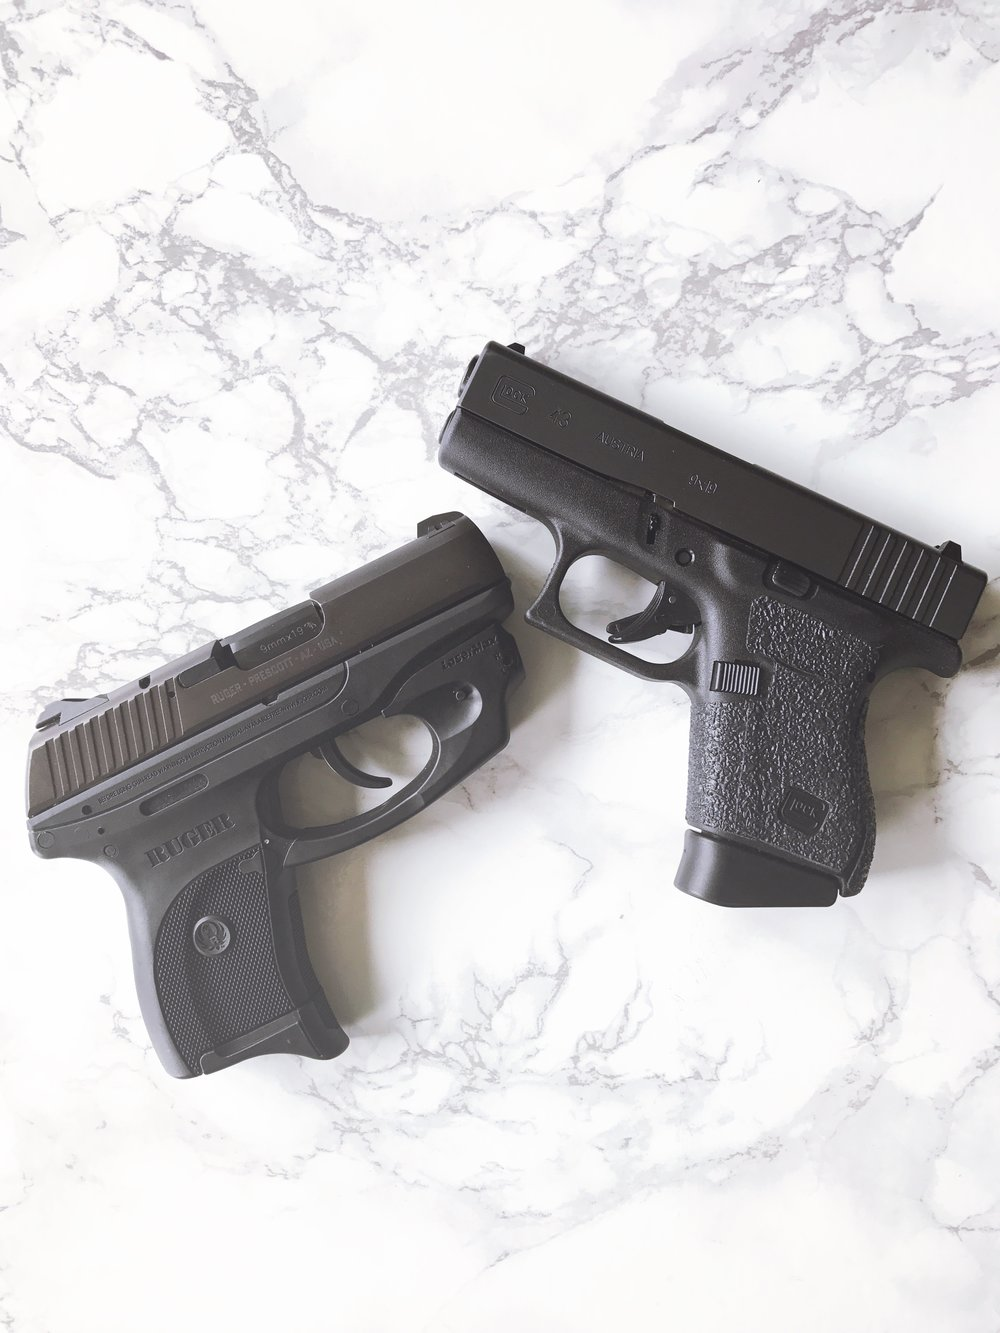 Ruger LC9 (L) and Glock 43 (R)